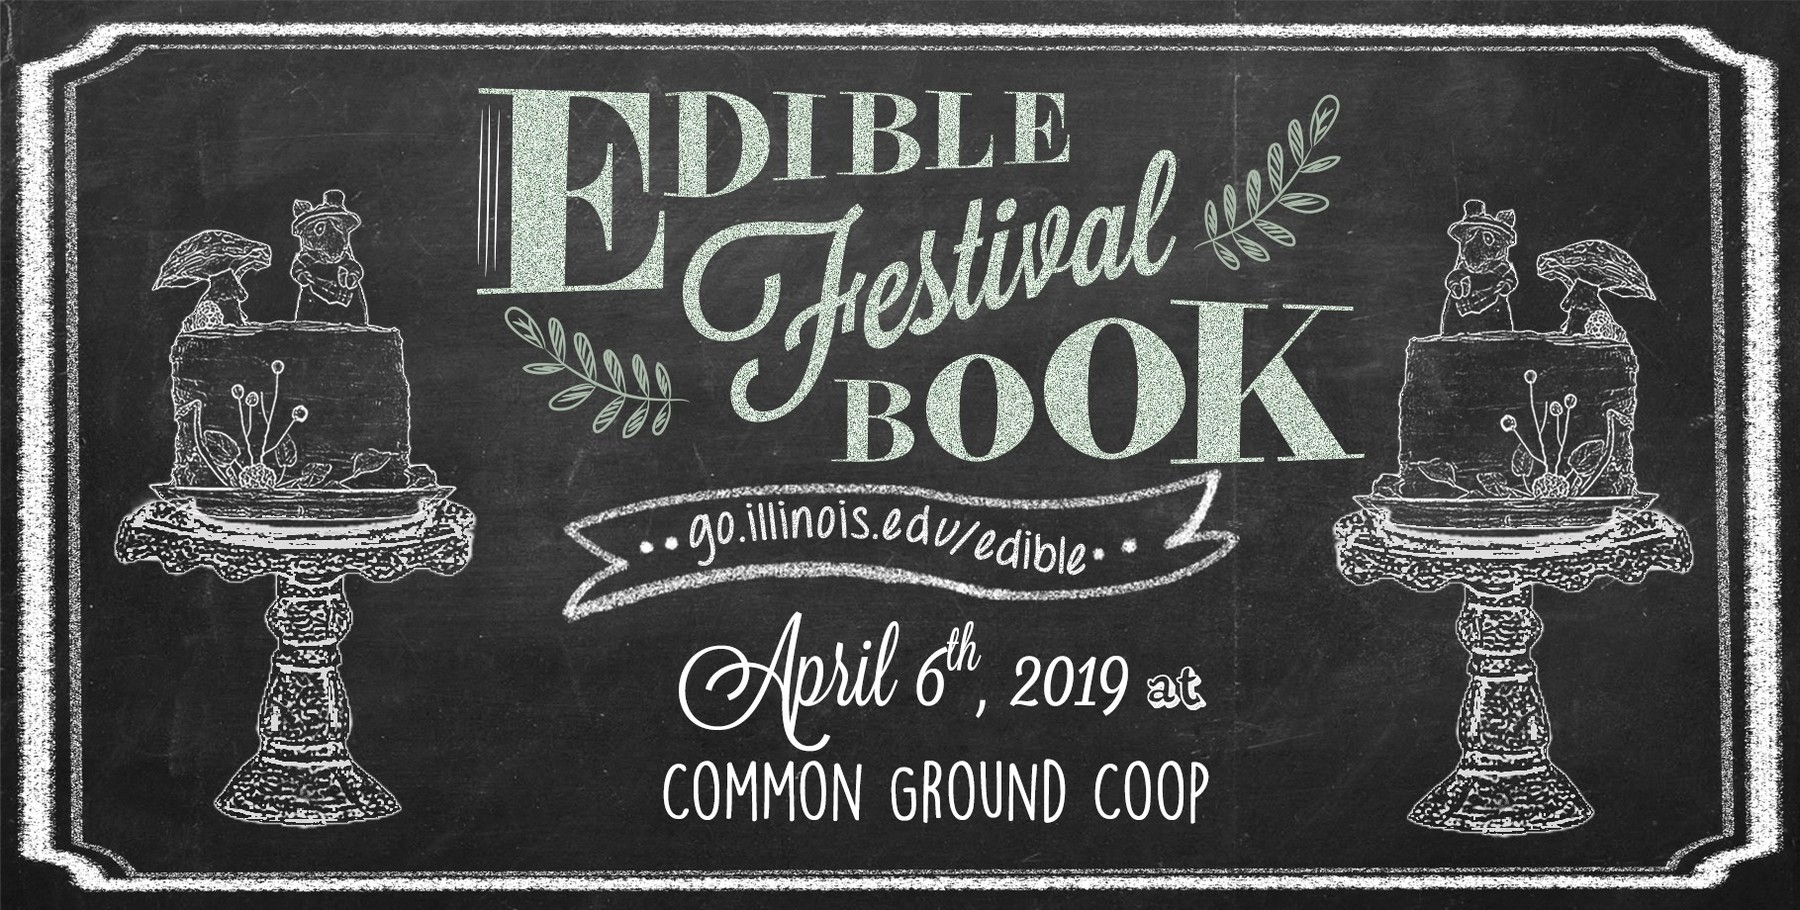 Graphic announcing the Edible Book Festival